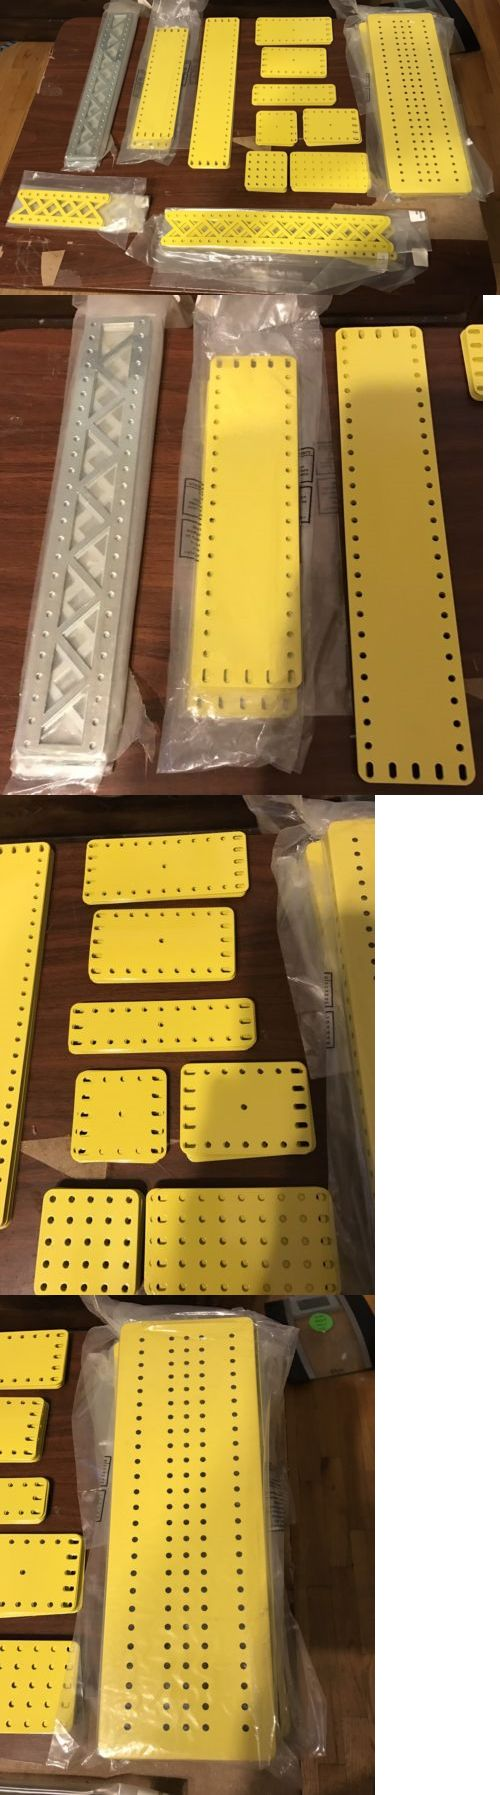 Pre-1980 724: Meccano Custom Plates Extension Set, 184 Parts, Original And Brand New -> BUY IT NOW ONLY: $349.95 on eBay!